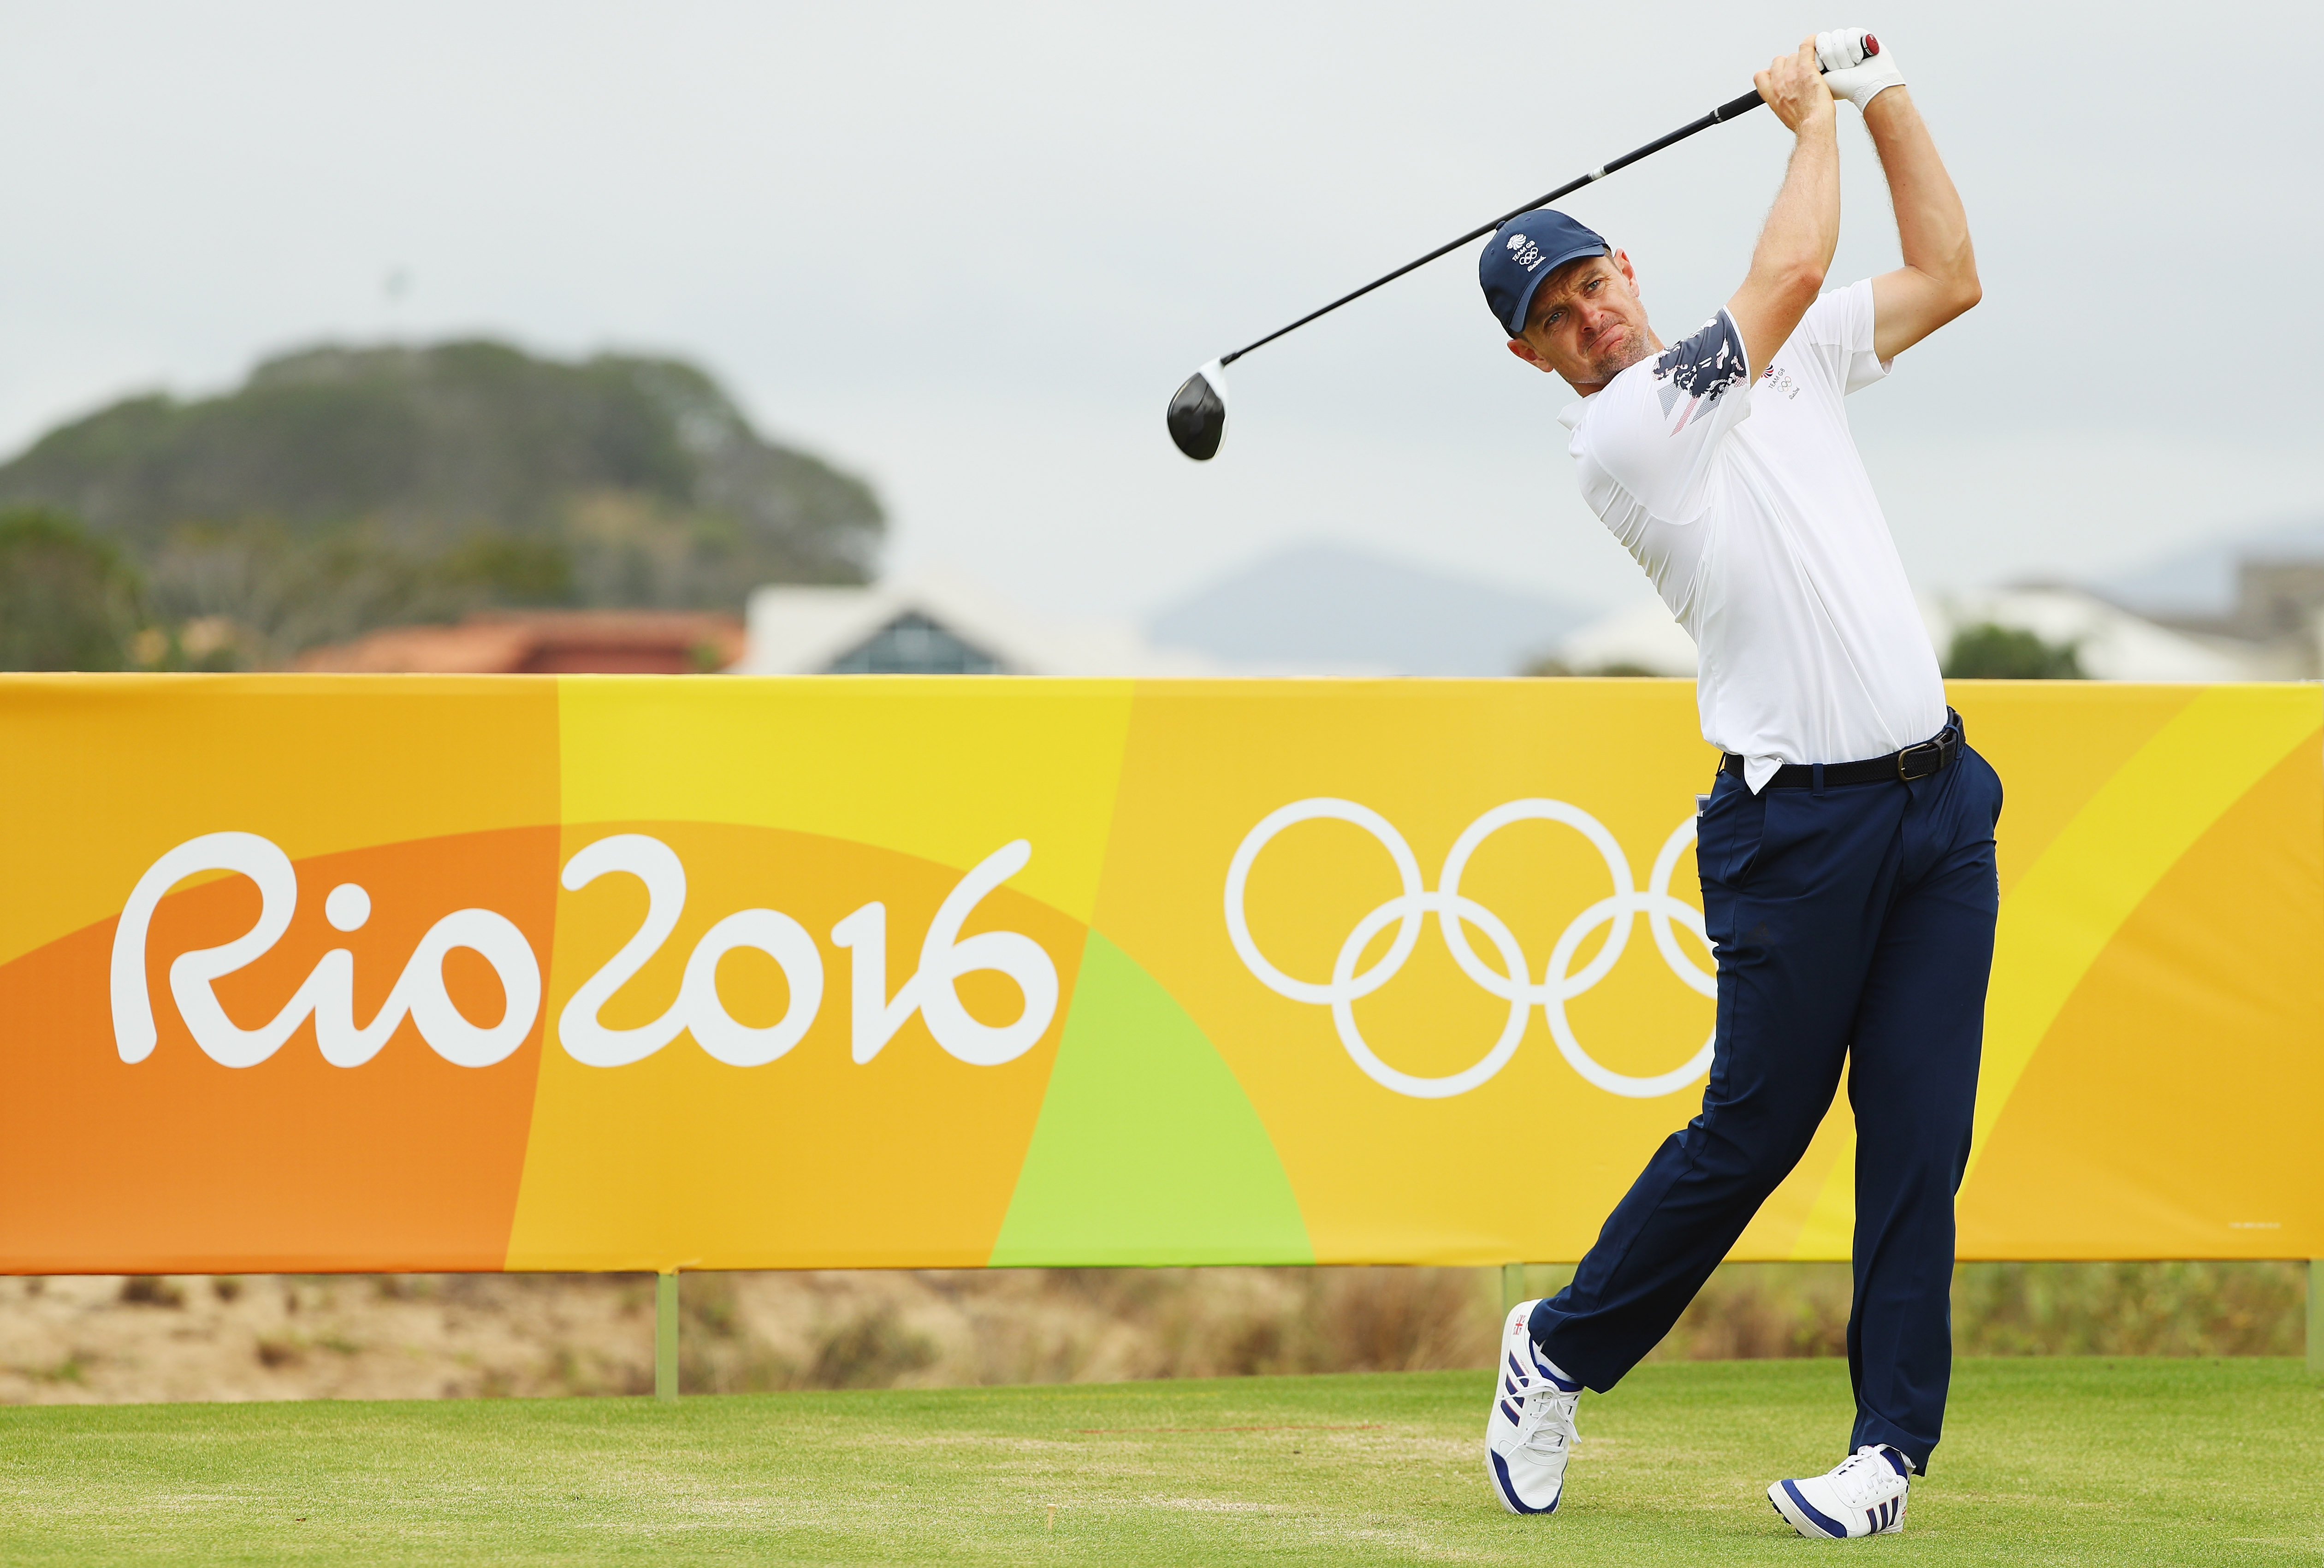 RIO DE JANEIRO, BRAZIL - AUGUST 08: Justin Rose of Great Britain hits a shot during a practice round during Day 3 of the Rio 2016 Olympic Games at Olympic Golf Course on August 8, 2016 in Rio de Janeiro, Brazil. (Photo by Scott Halleran/Getty Images)